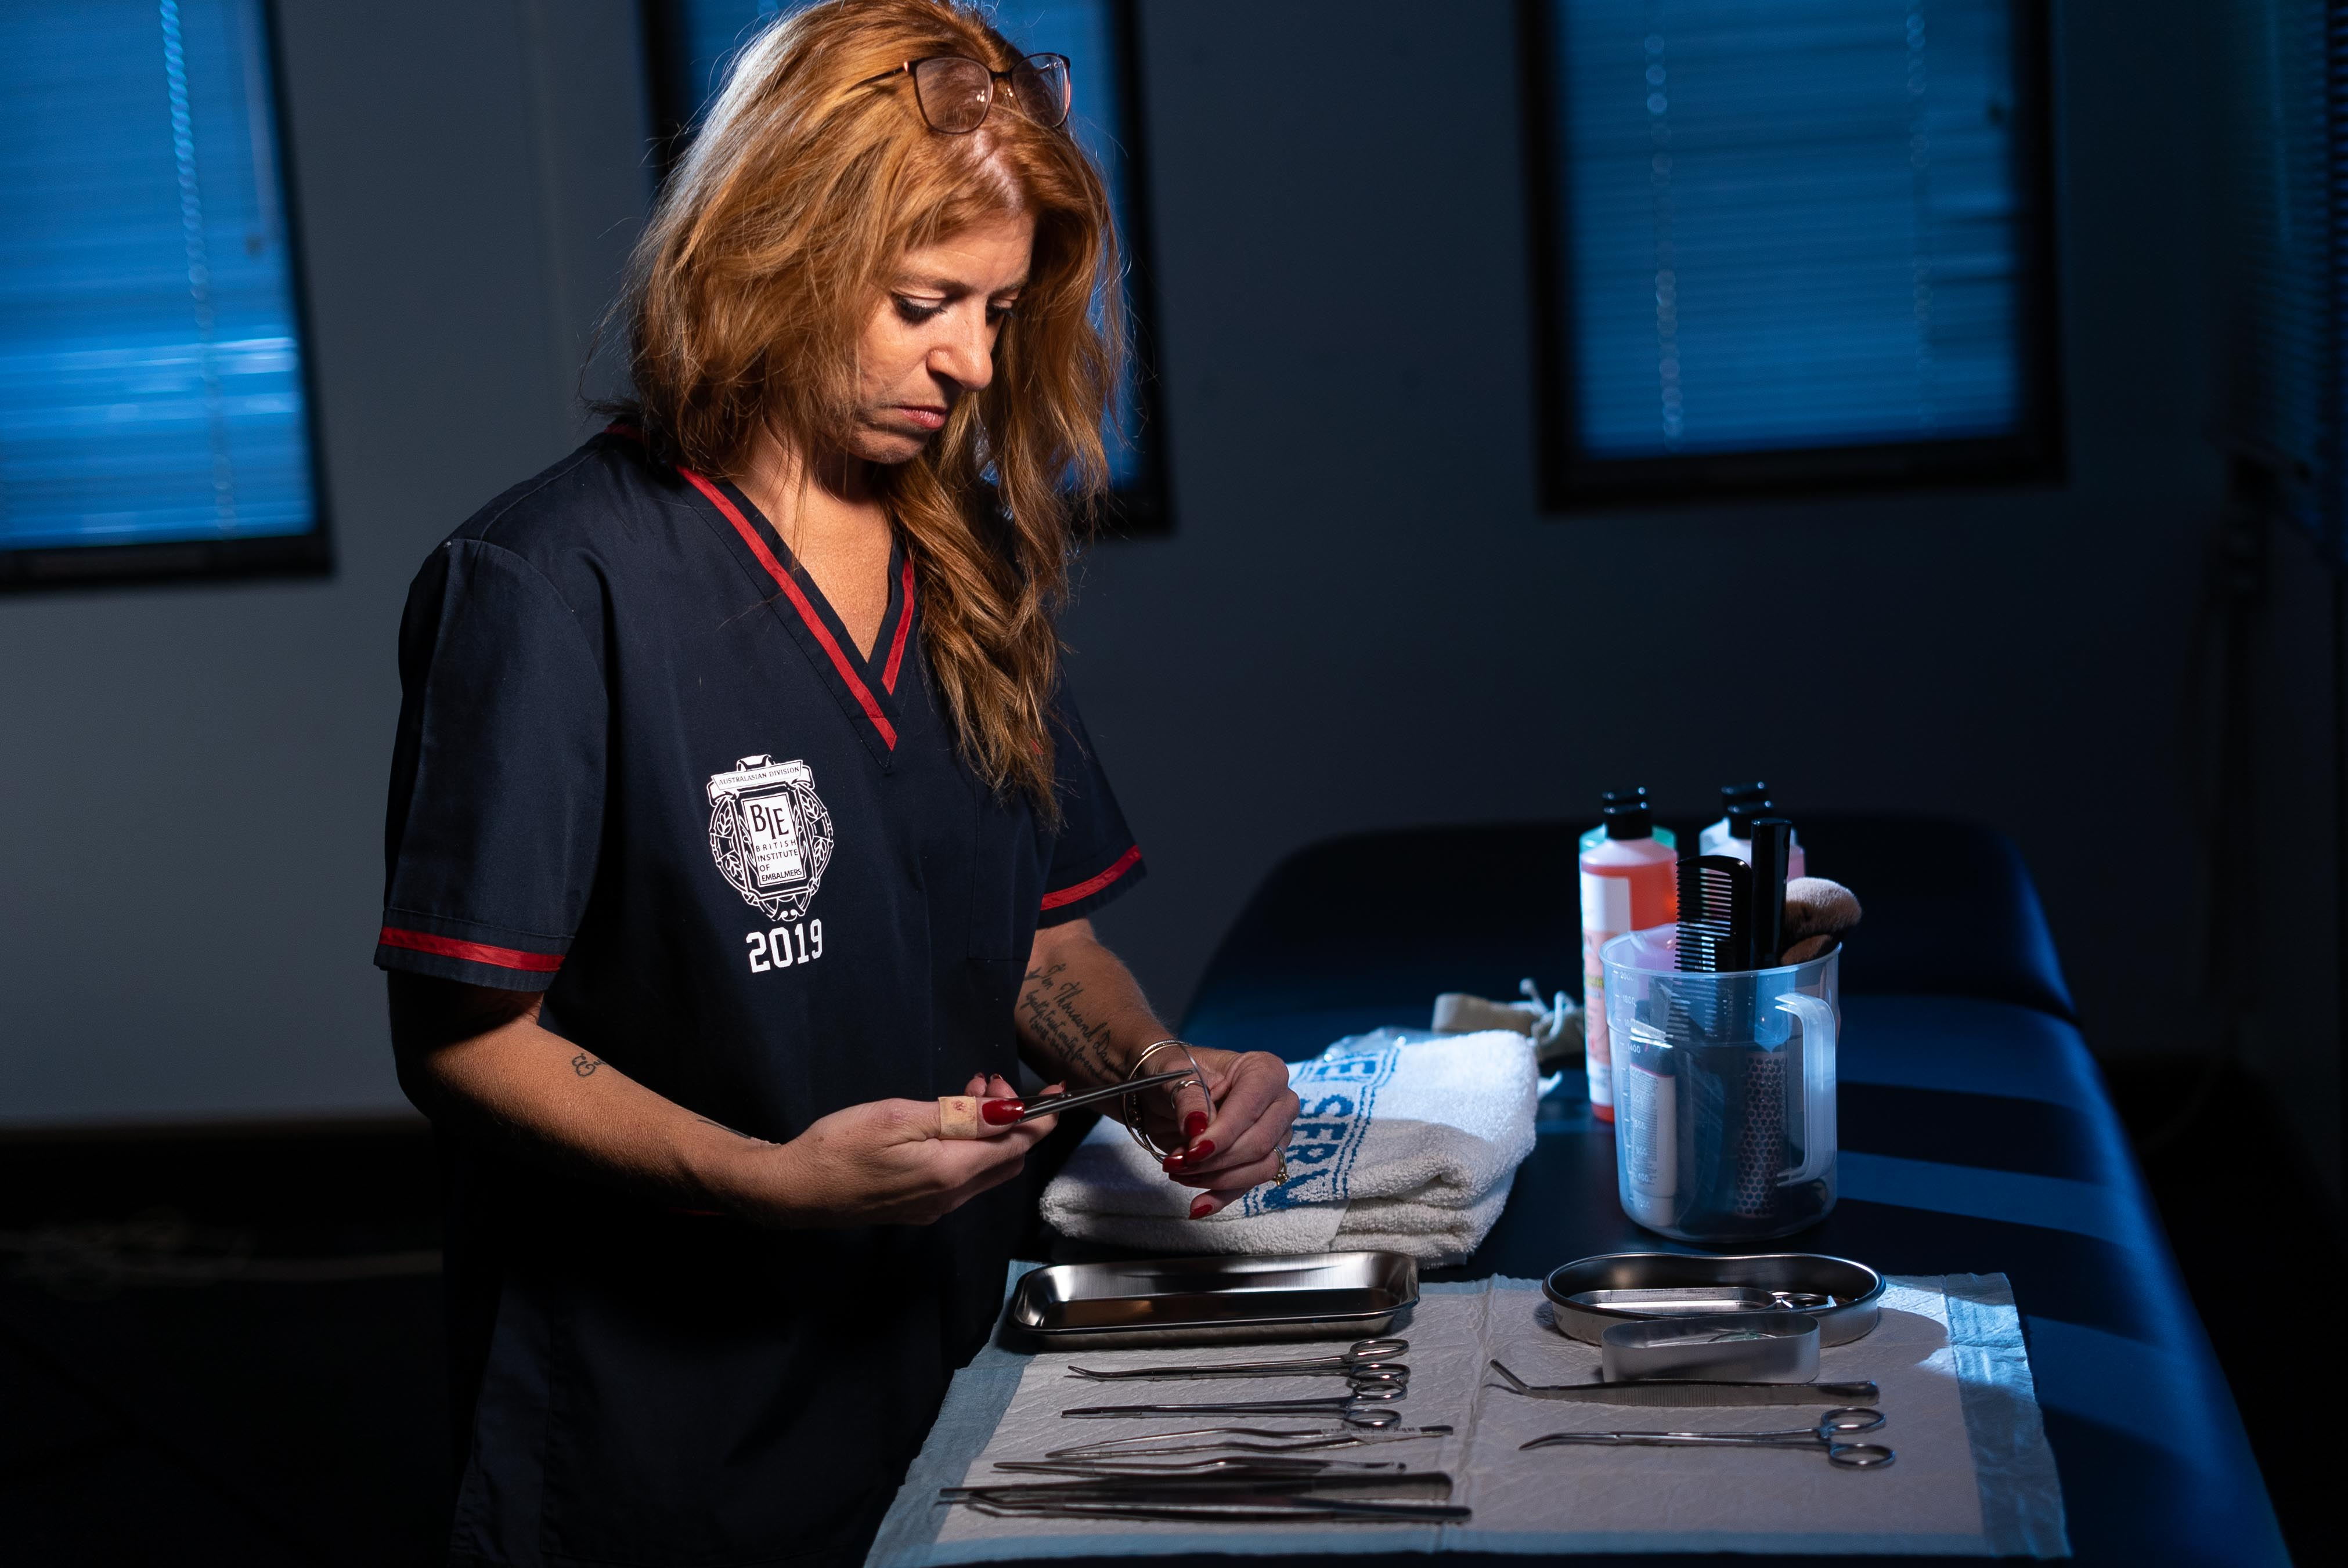 A woman in red hair handles surgical equipment in a dimly lit room